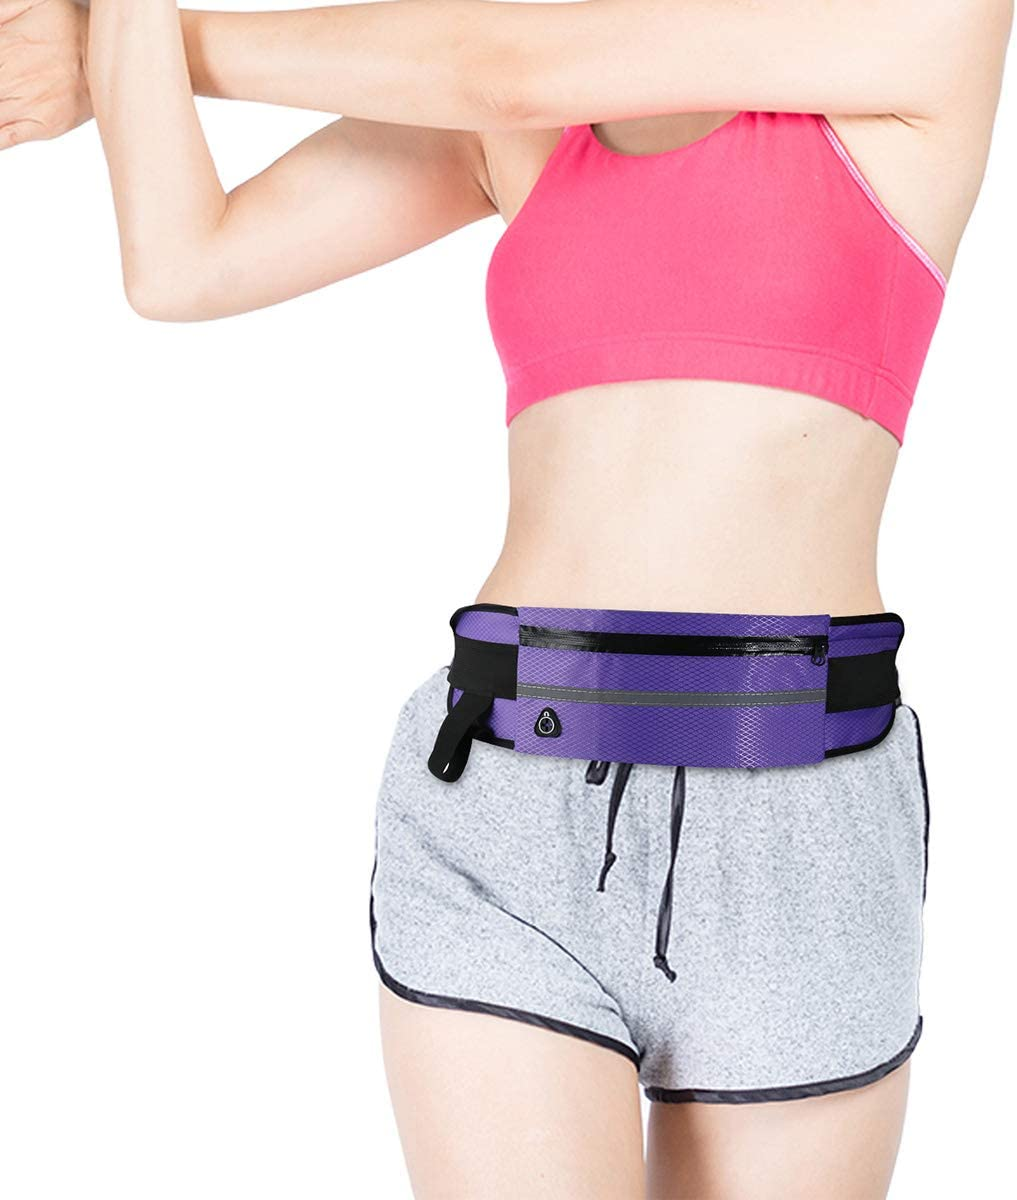 Nuoterm Fanny Pack Waist Bag for Unisex Ultra Thin Travel Waist Pack Light Waterproof Waist Pack Suitable for Phones and Tablets Up 6.5 inches Adjustable Belt Multifunction